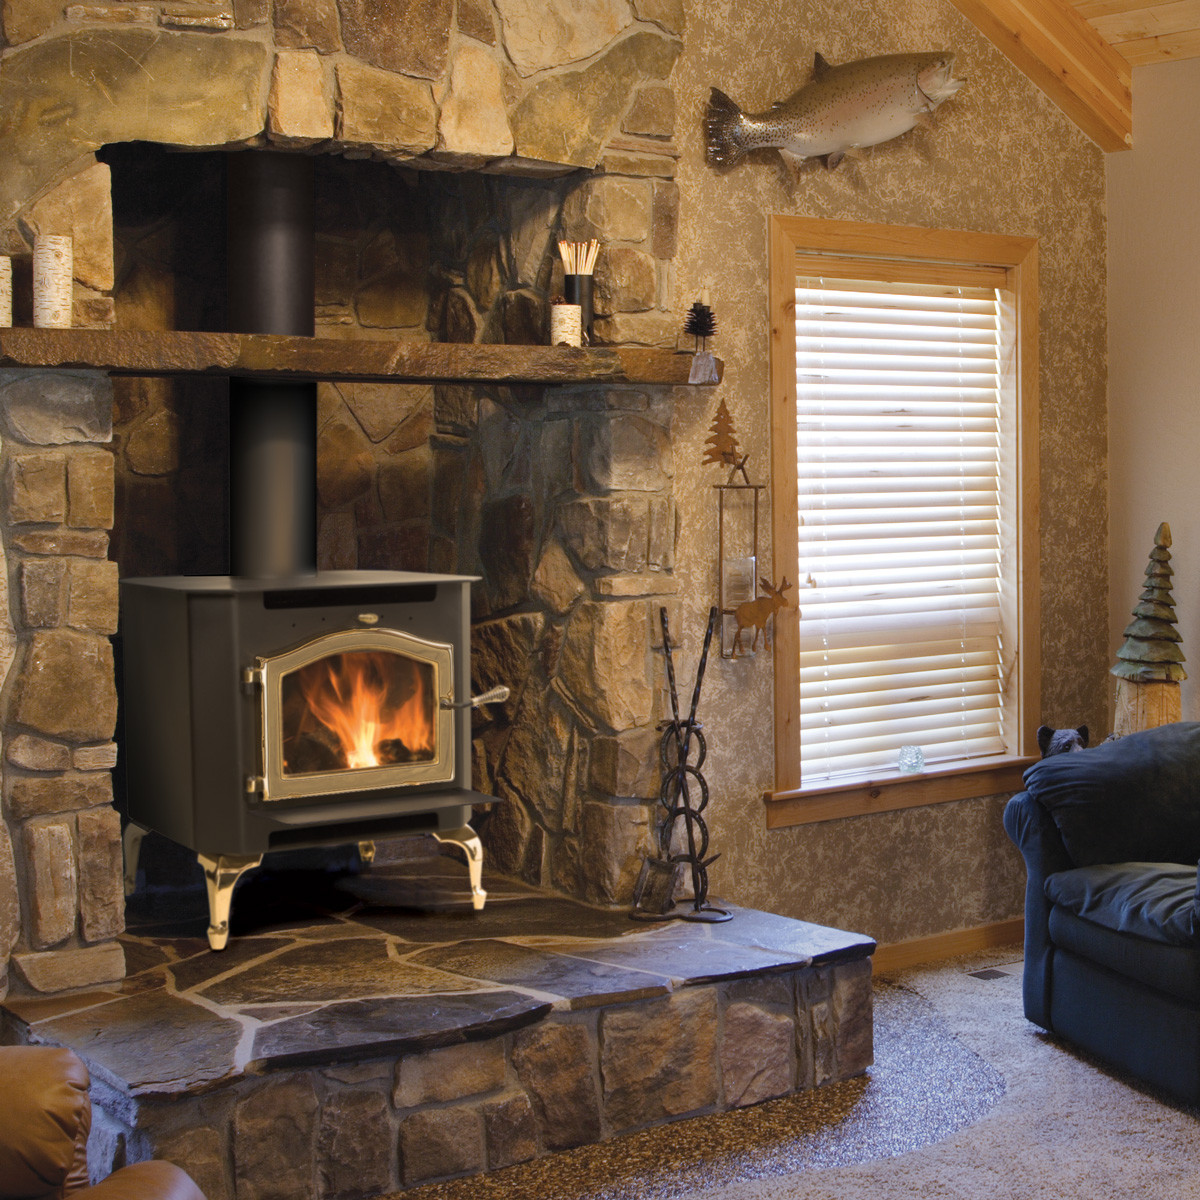 Best ideas about Wood For Fireplace . Save or Pin Sequoia Wood Stove and Fireplace from Kuma Stoves Now.